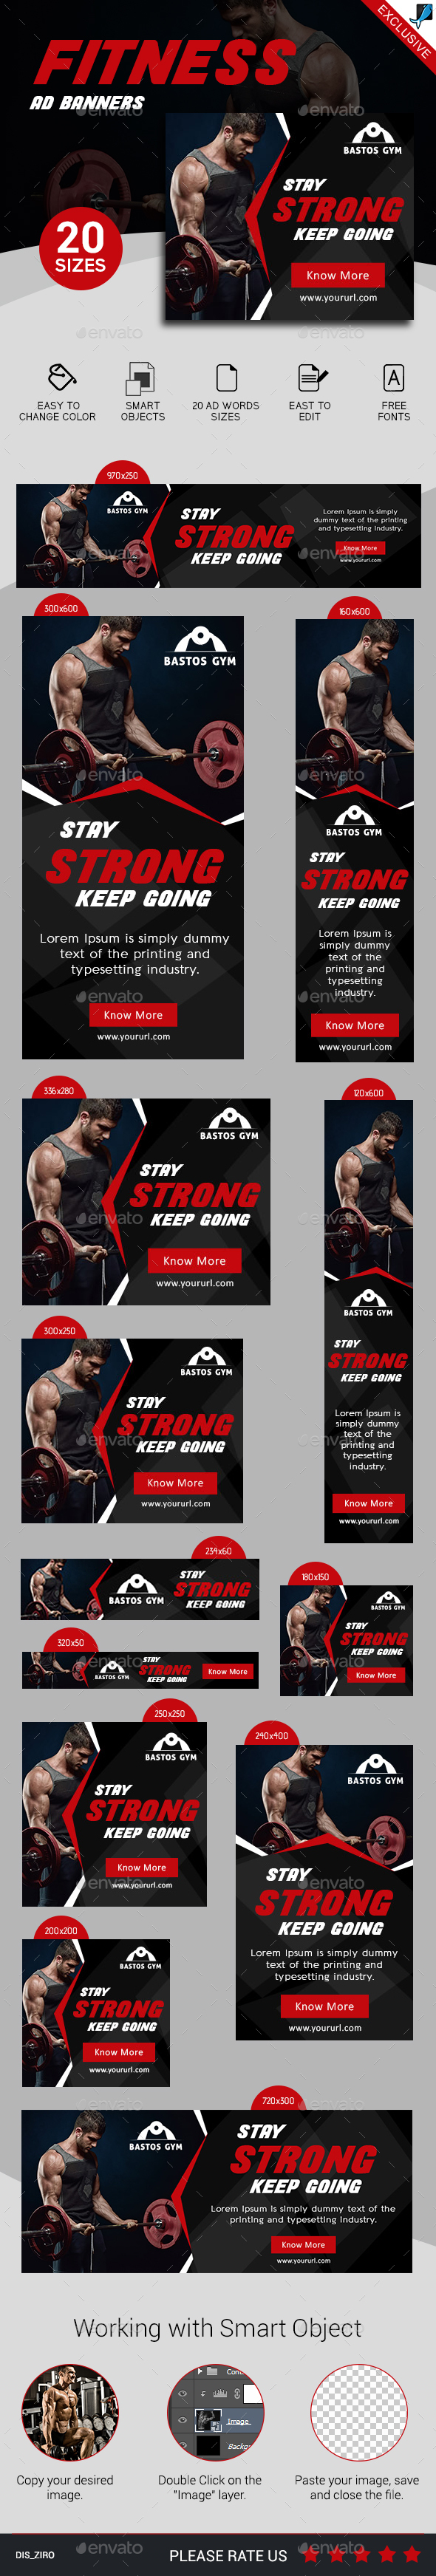 Fitness Ad Banners Set 3 - Banners & Ads Web Elements